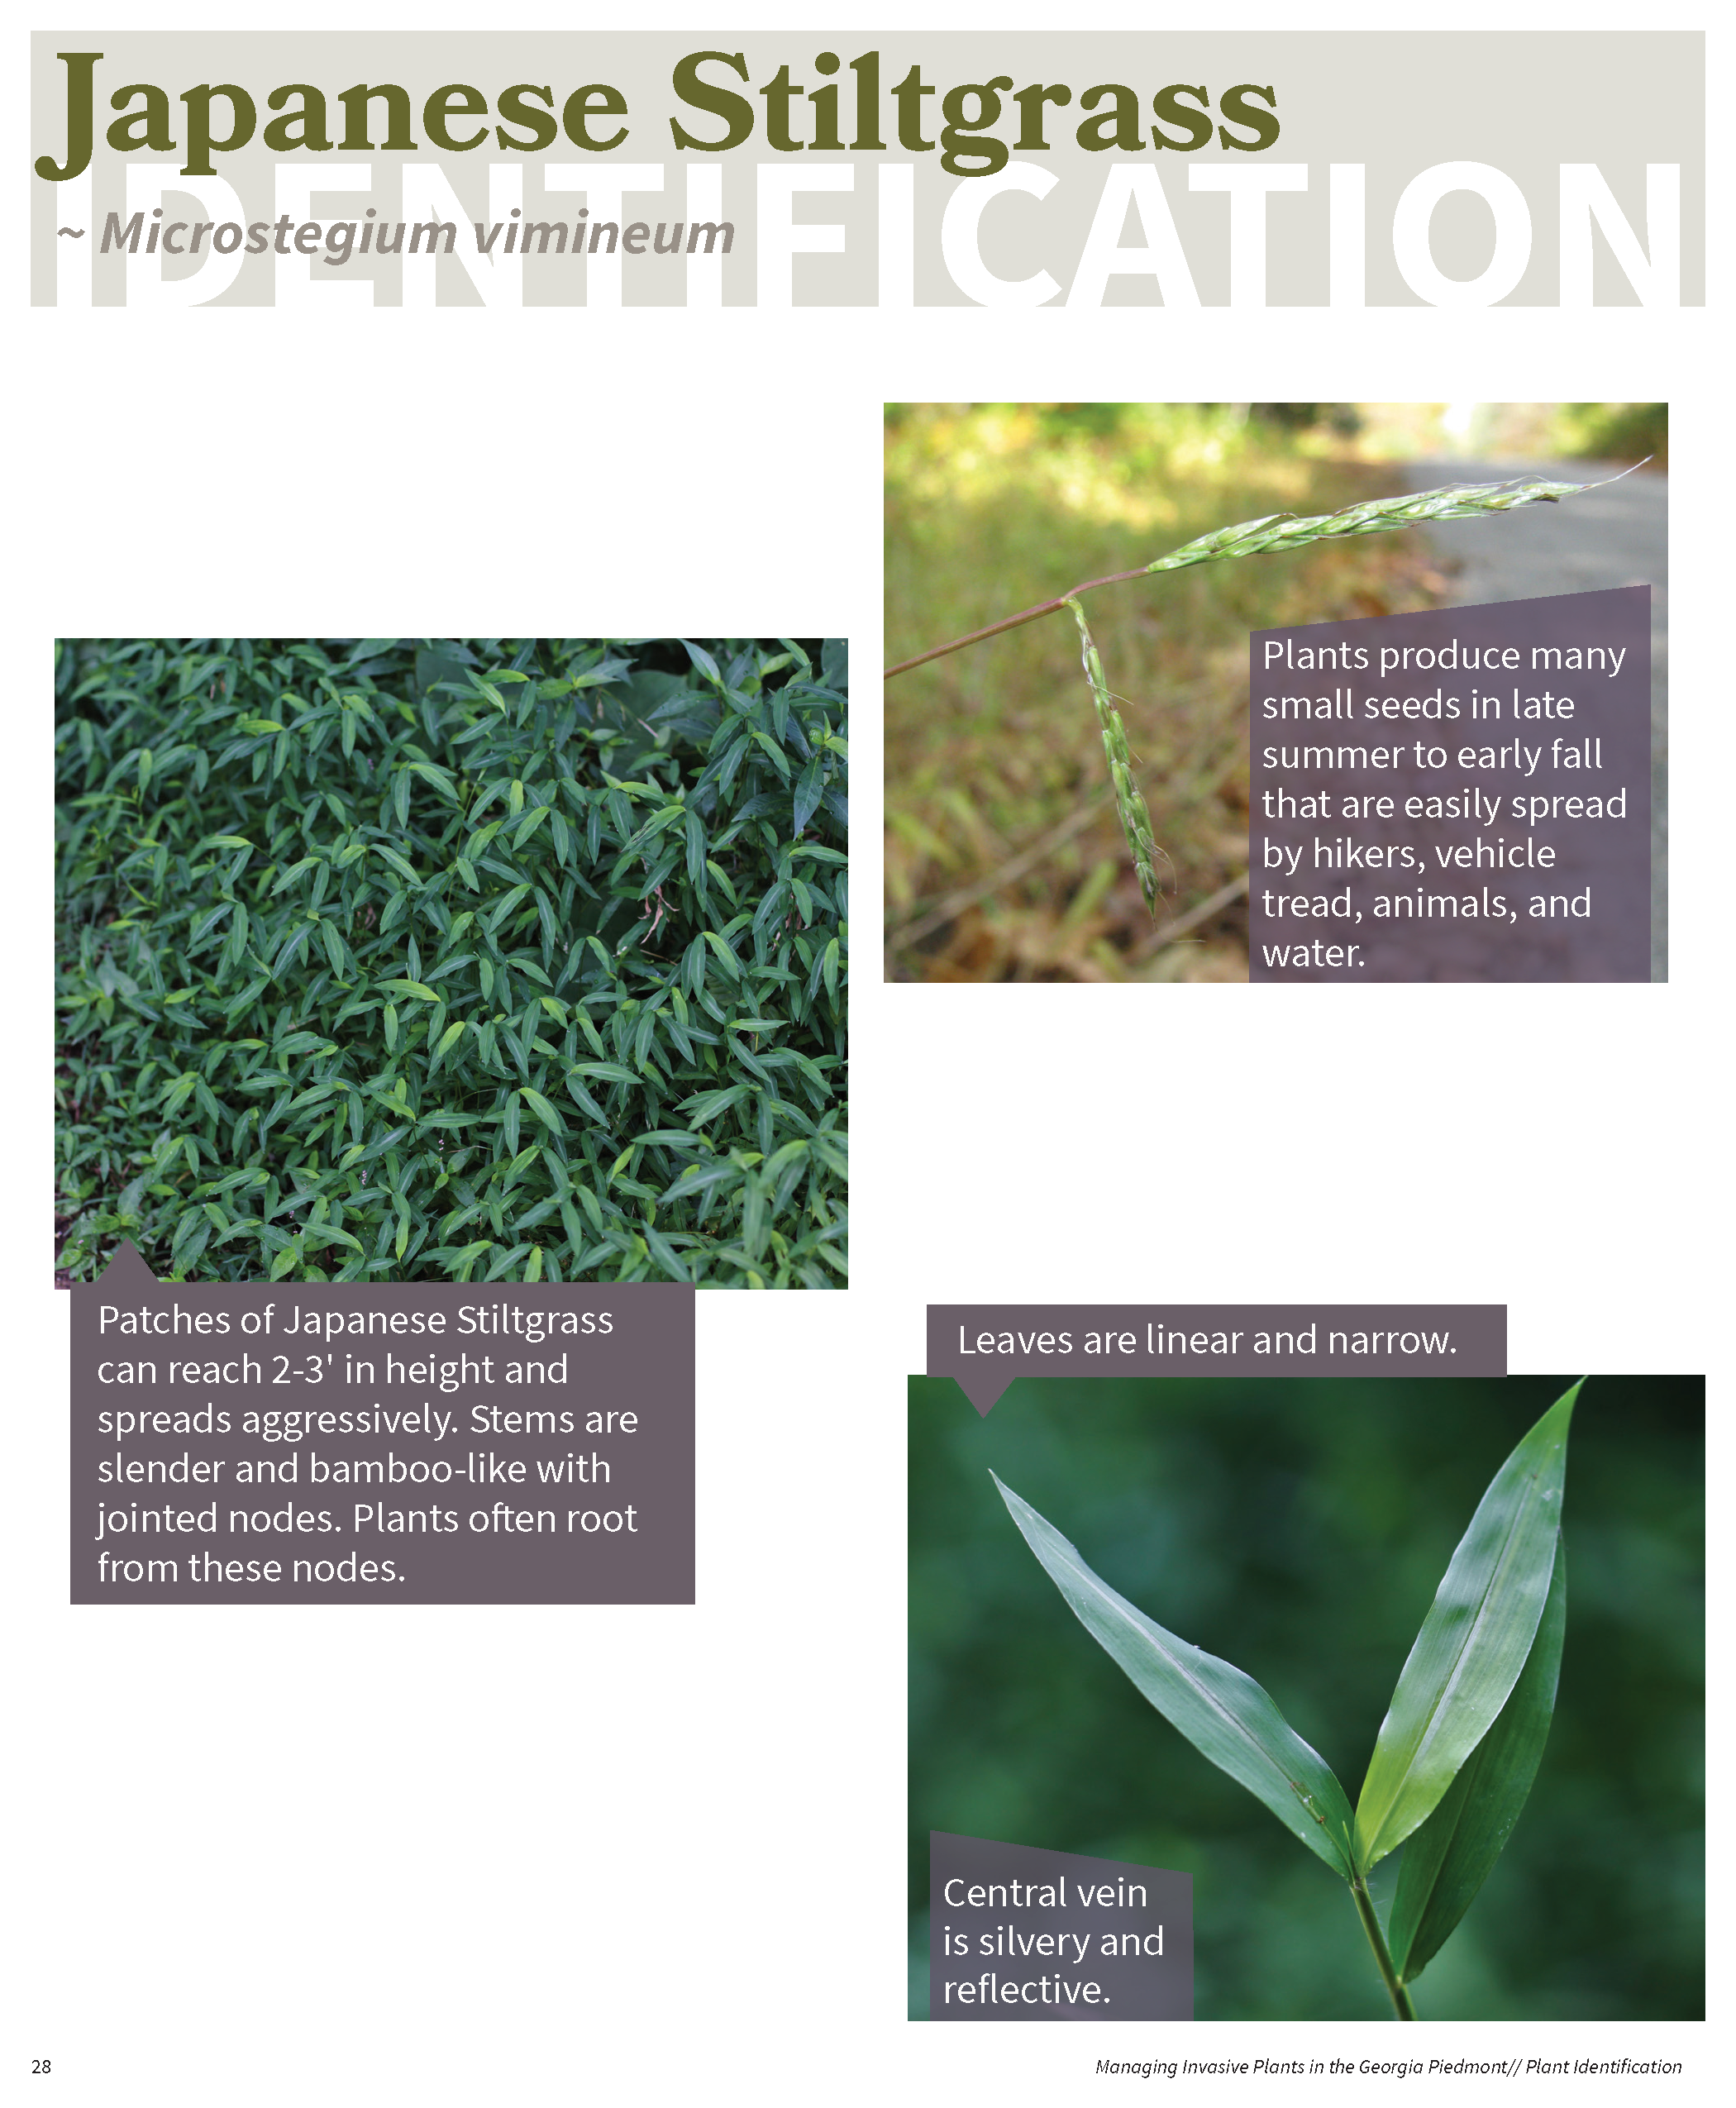 Managing Invasive Plants in the GA Piedmont for web_Page_27